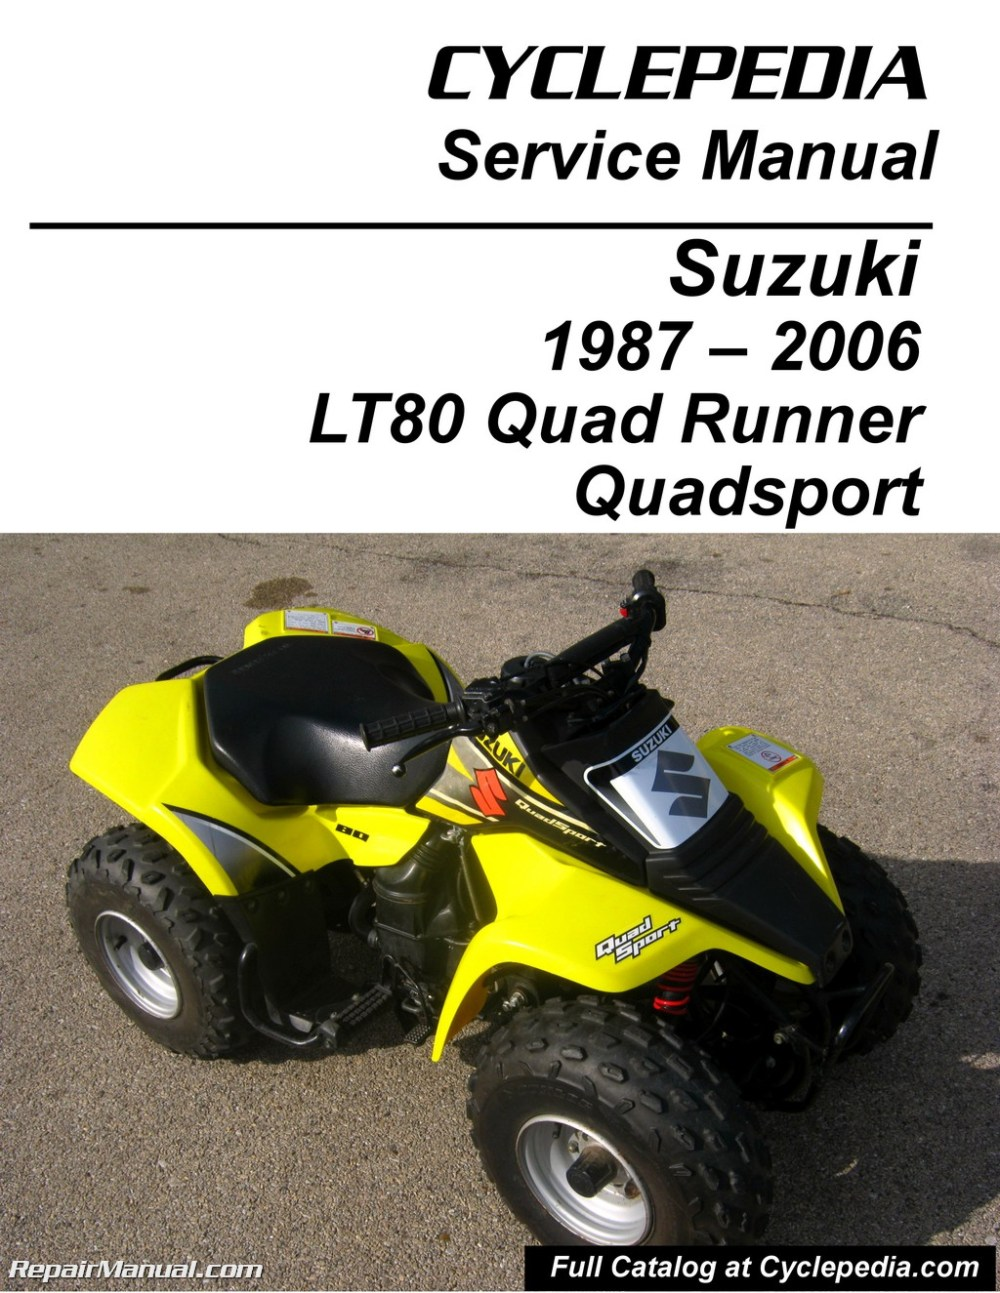 medium resolution of suzuki lt80 quadsport kawasaki kfx80 cyclepedia printed servicesuzuki lt80 quadsport